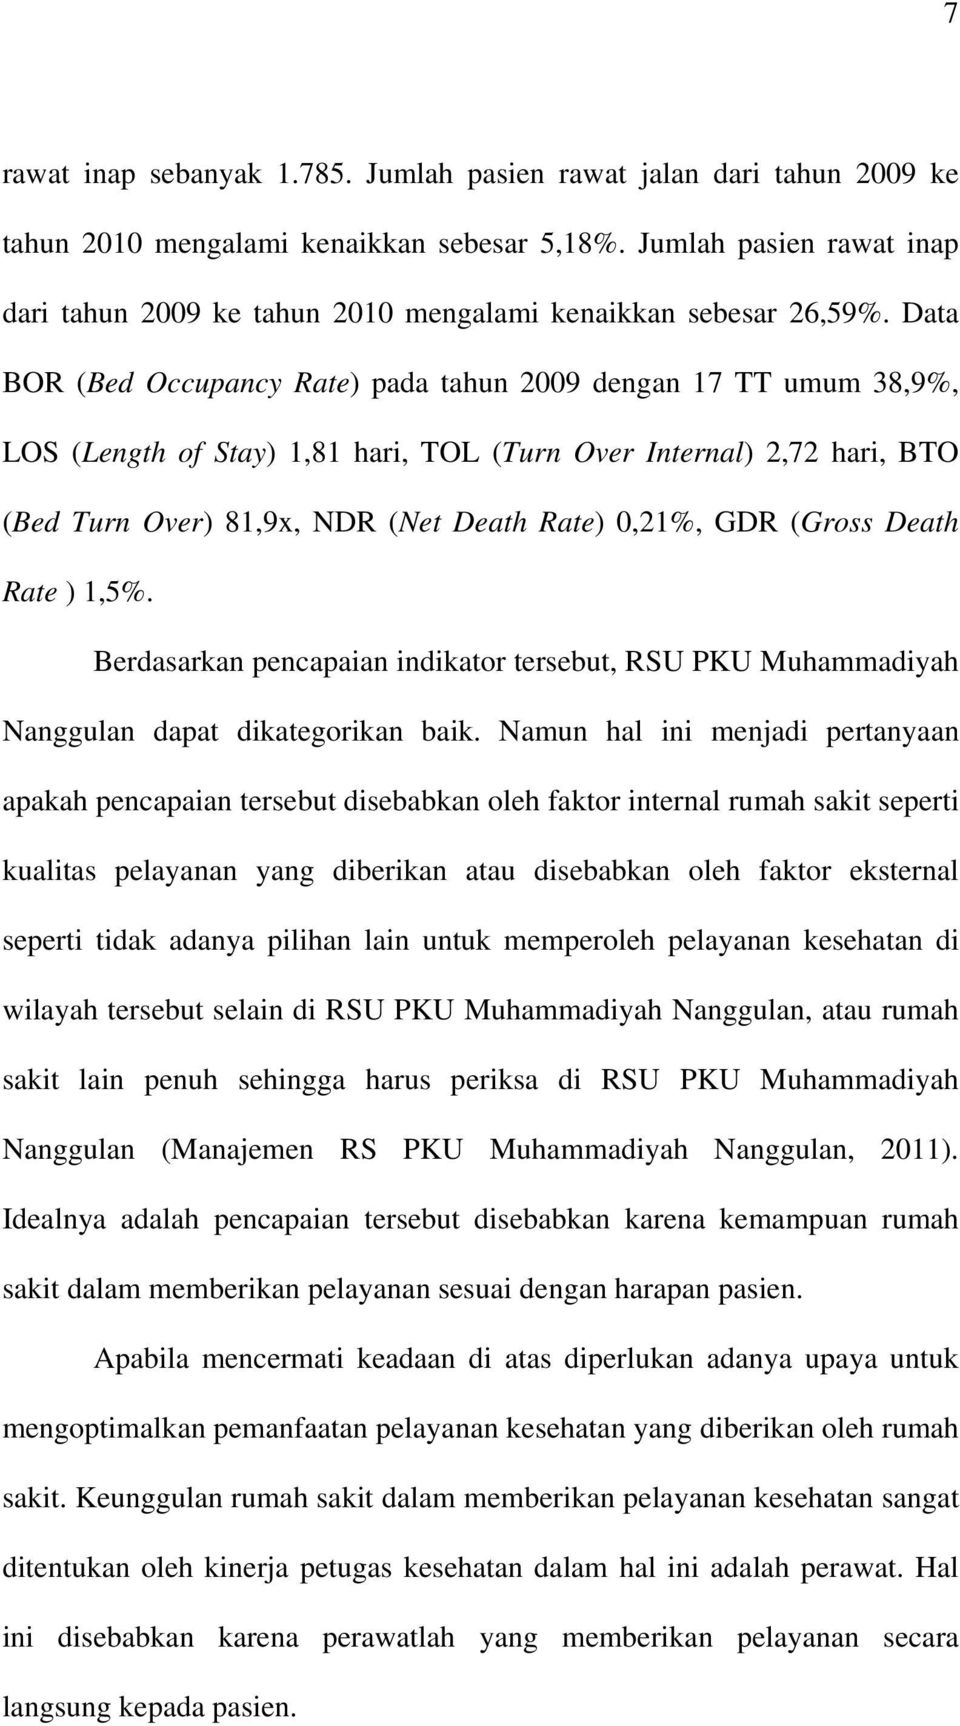 Data BOR (Bed Occupancy Rate) pada tahun 2009 dengan 17 TT umum 38,9%, LOS (Length of Stay) 1,81 hari, TOL (Turn Over Internal) 2,72 hari, BTO (Bed Turn Over) 81,9x, NDR (Net Death Rate) 0,21%, GDR